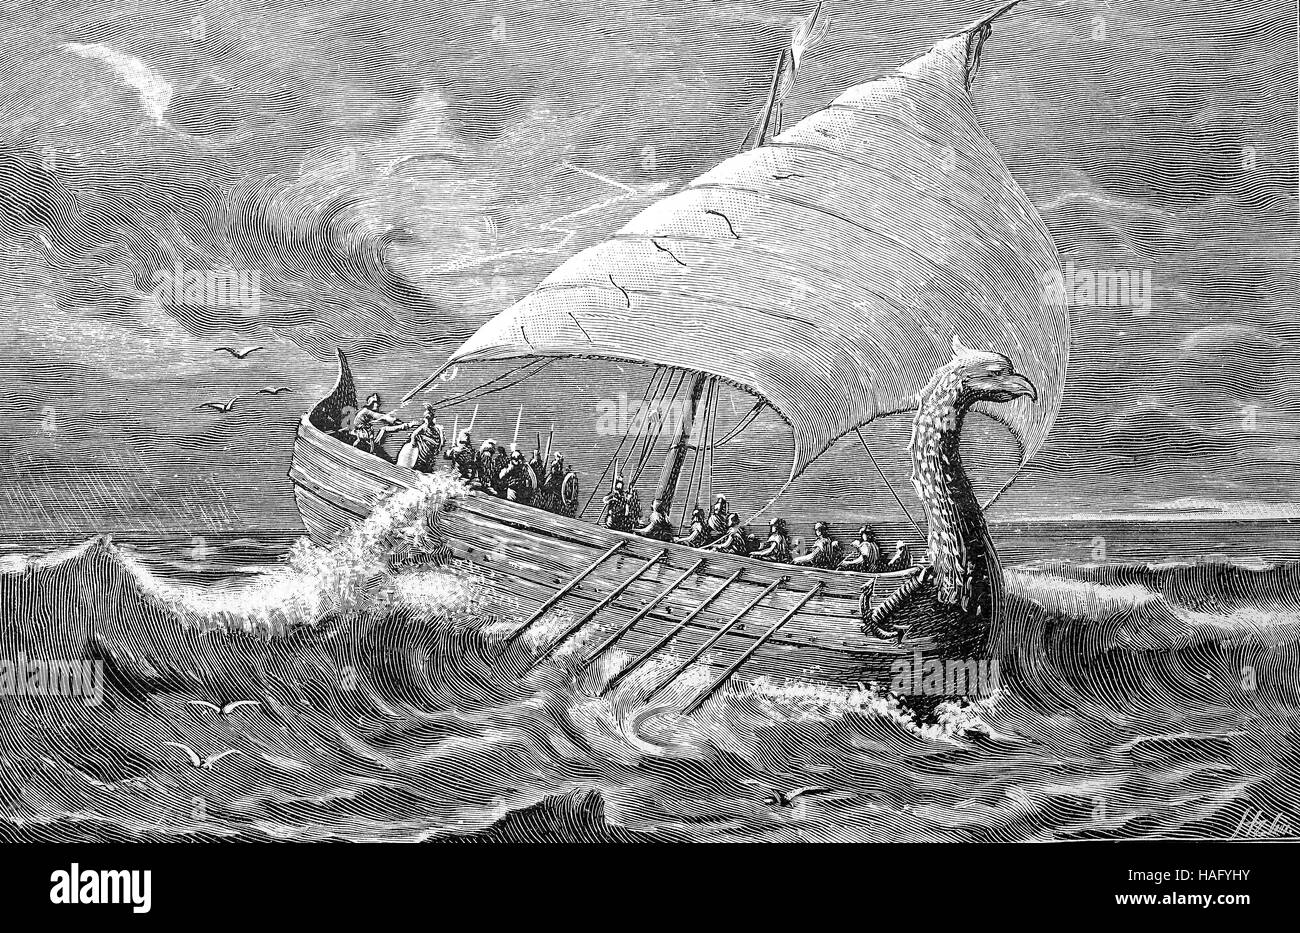 Ancient Greek merchant ship, 350 BC, woodcut from the year 1880 - Stock Image